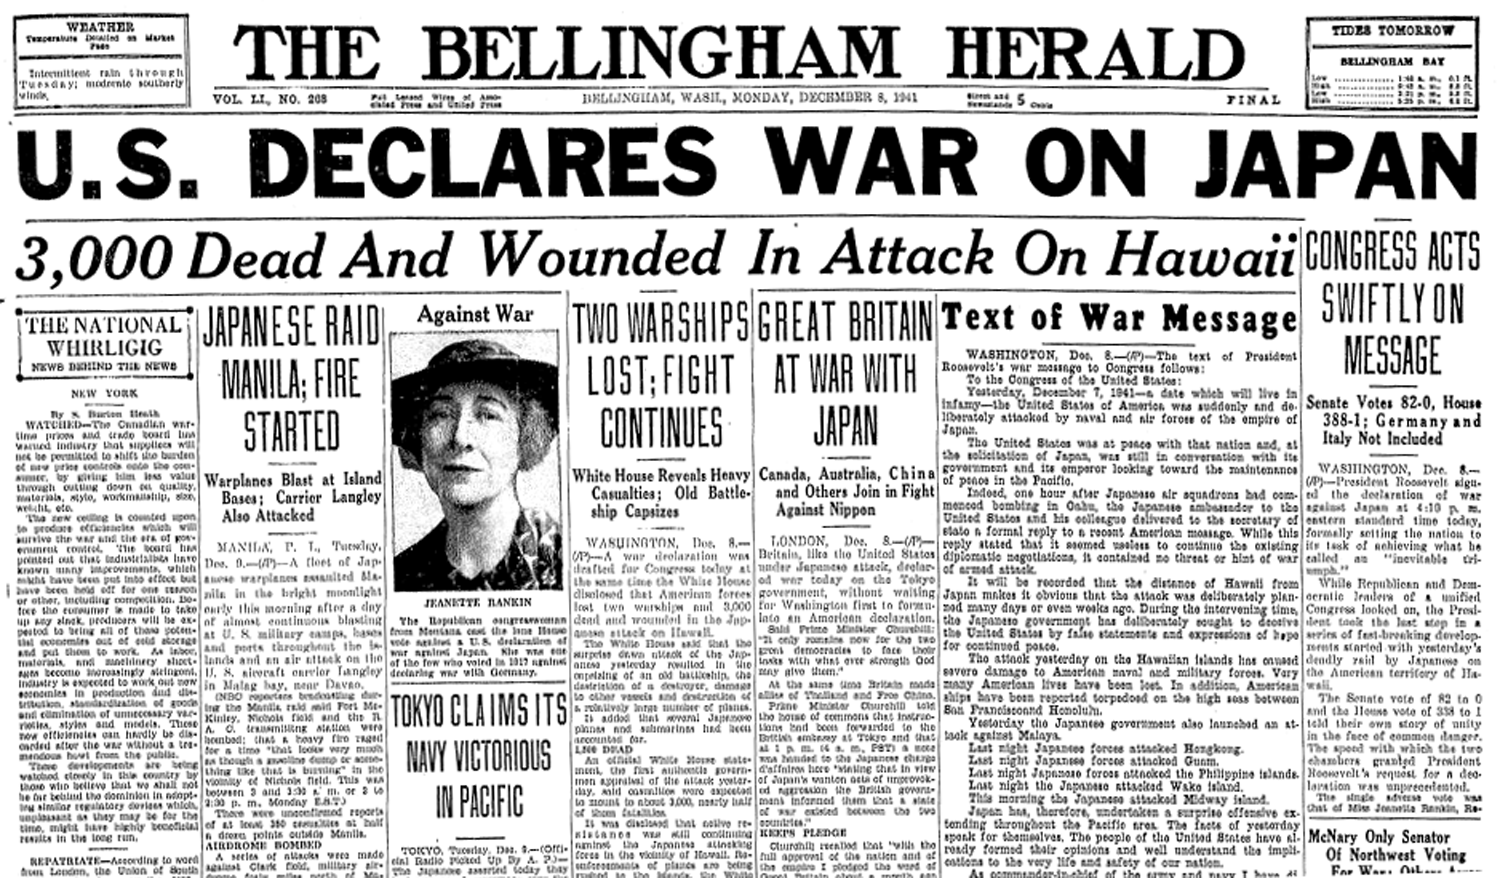 Monday, December 8th, 1941 - coverage by The Bellingham